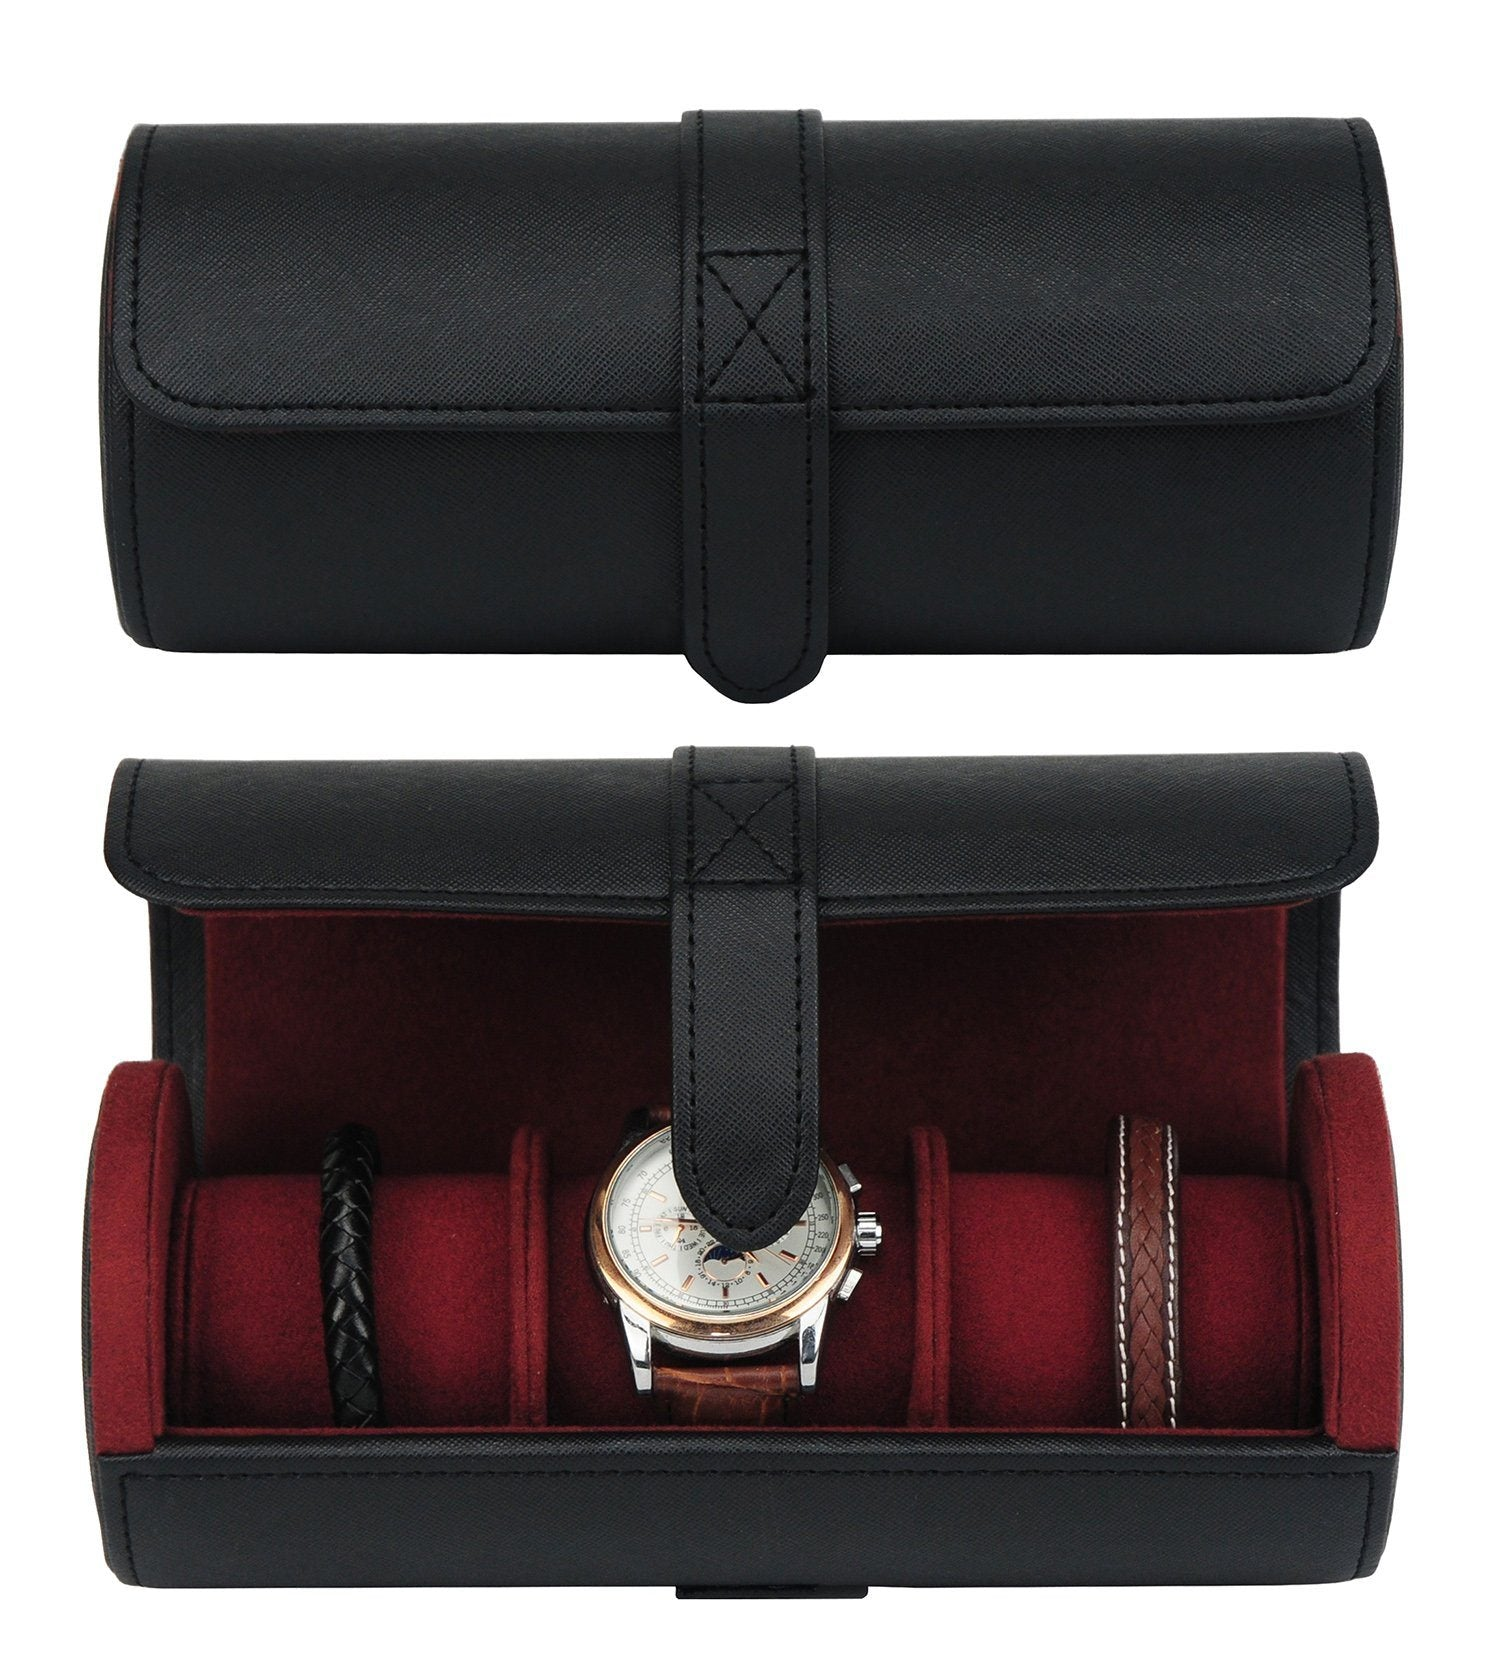 Black Leather Watch Case for 3 Storage Boxes Clinks Australia